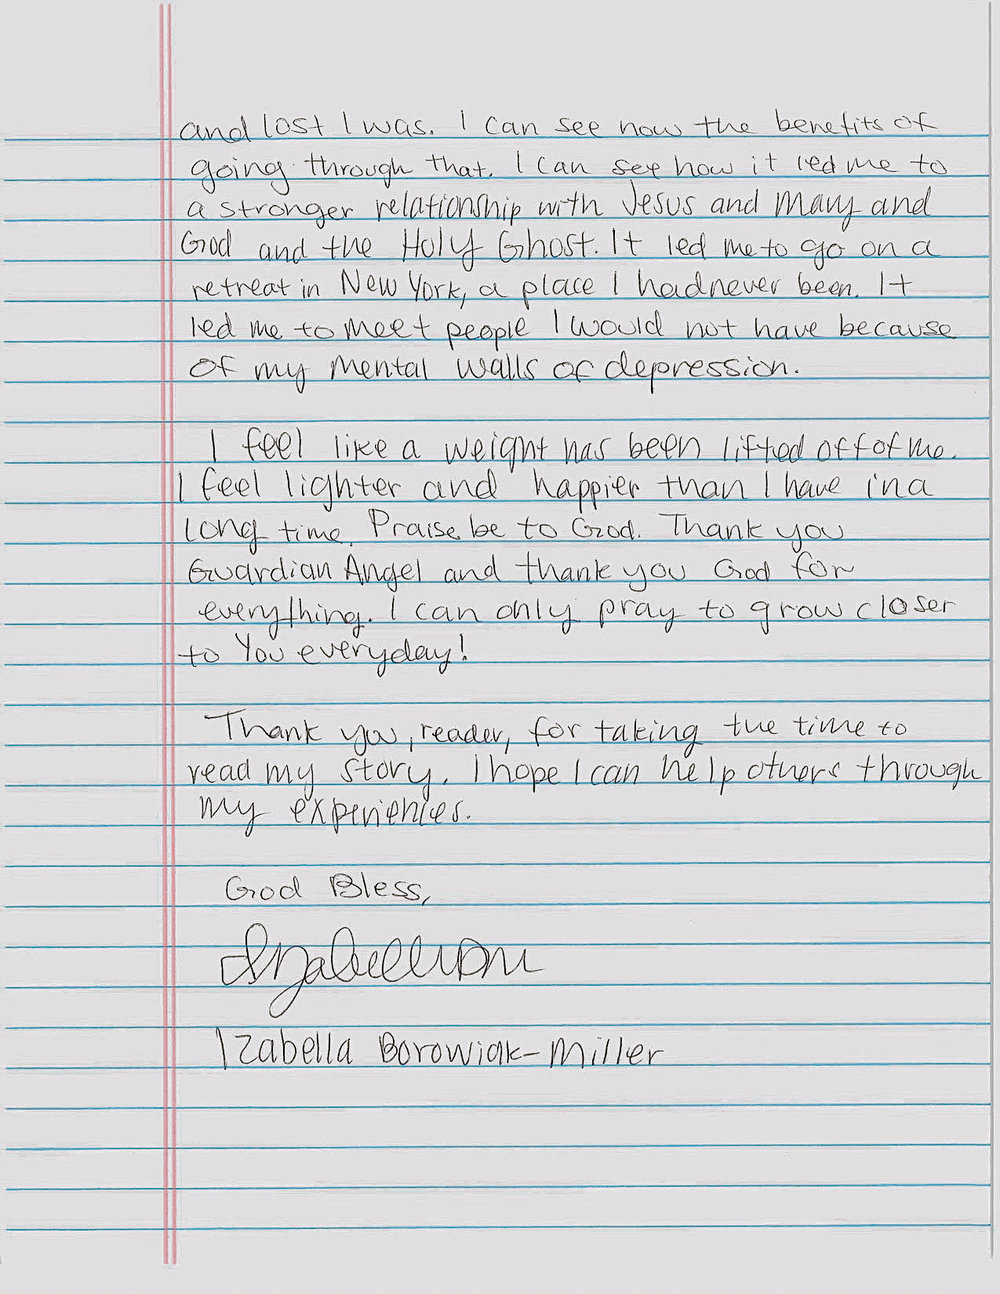 The-Catholic-Woman Letters-7.jpg